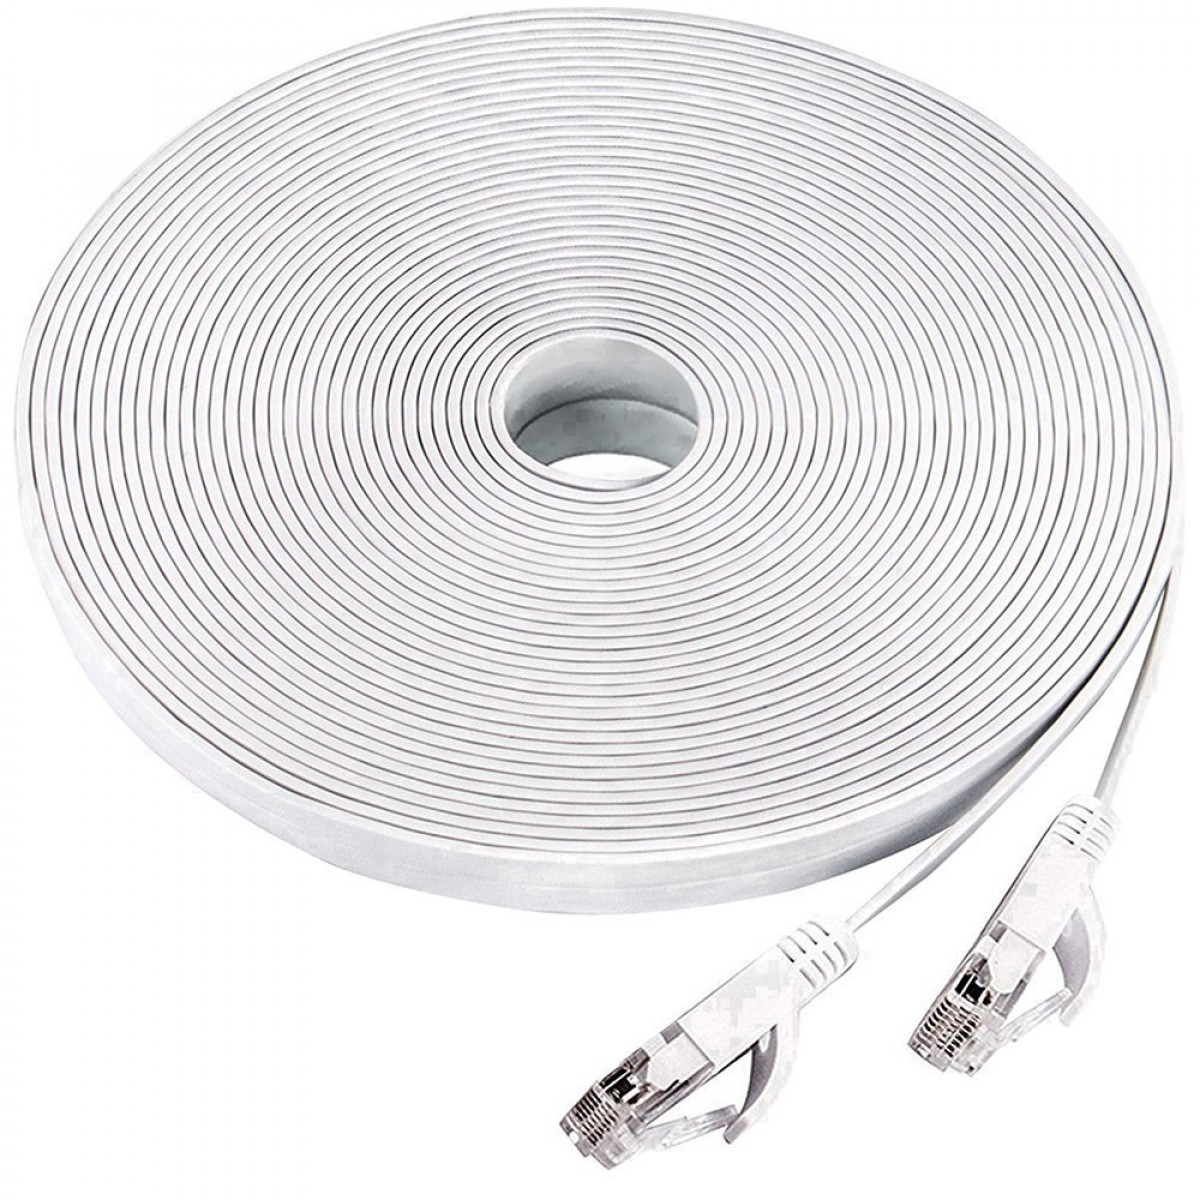 Ethernet Cable 50 Ft Cat 6 Flat Lan Computer Networking Cord Network Cables Cat5e Black Patch 32 Awg Foot Longsupports Cat6a Cat5